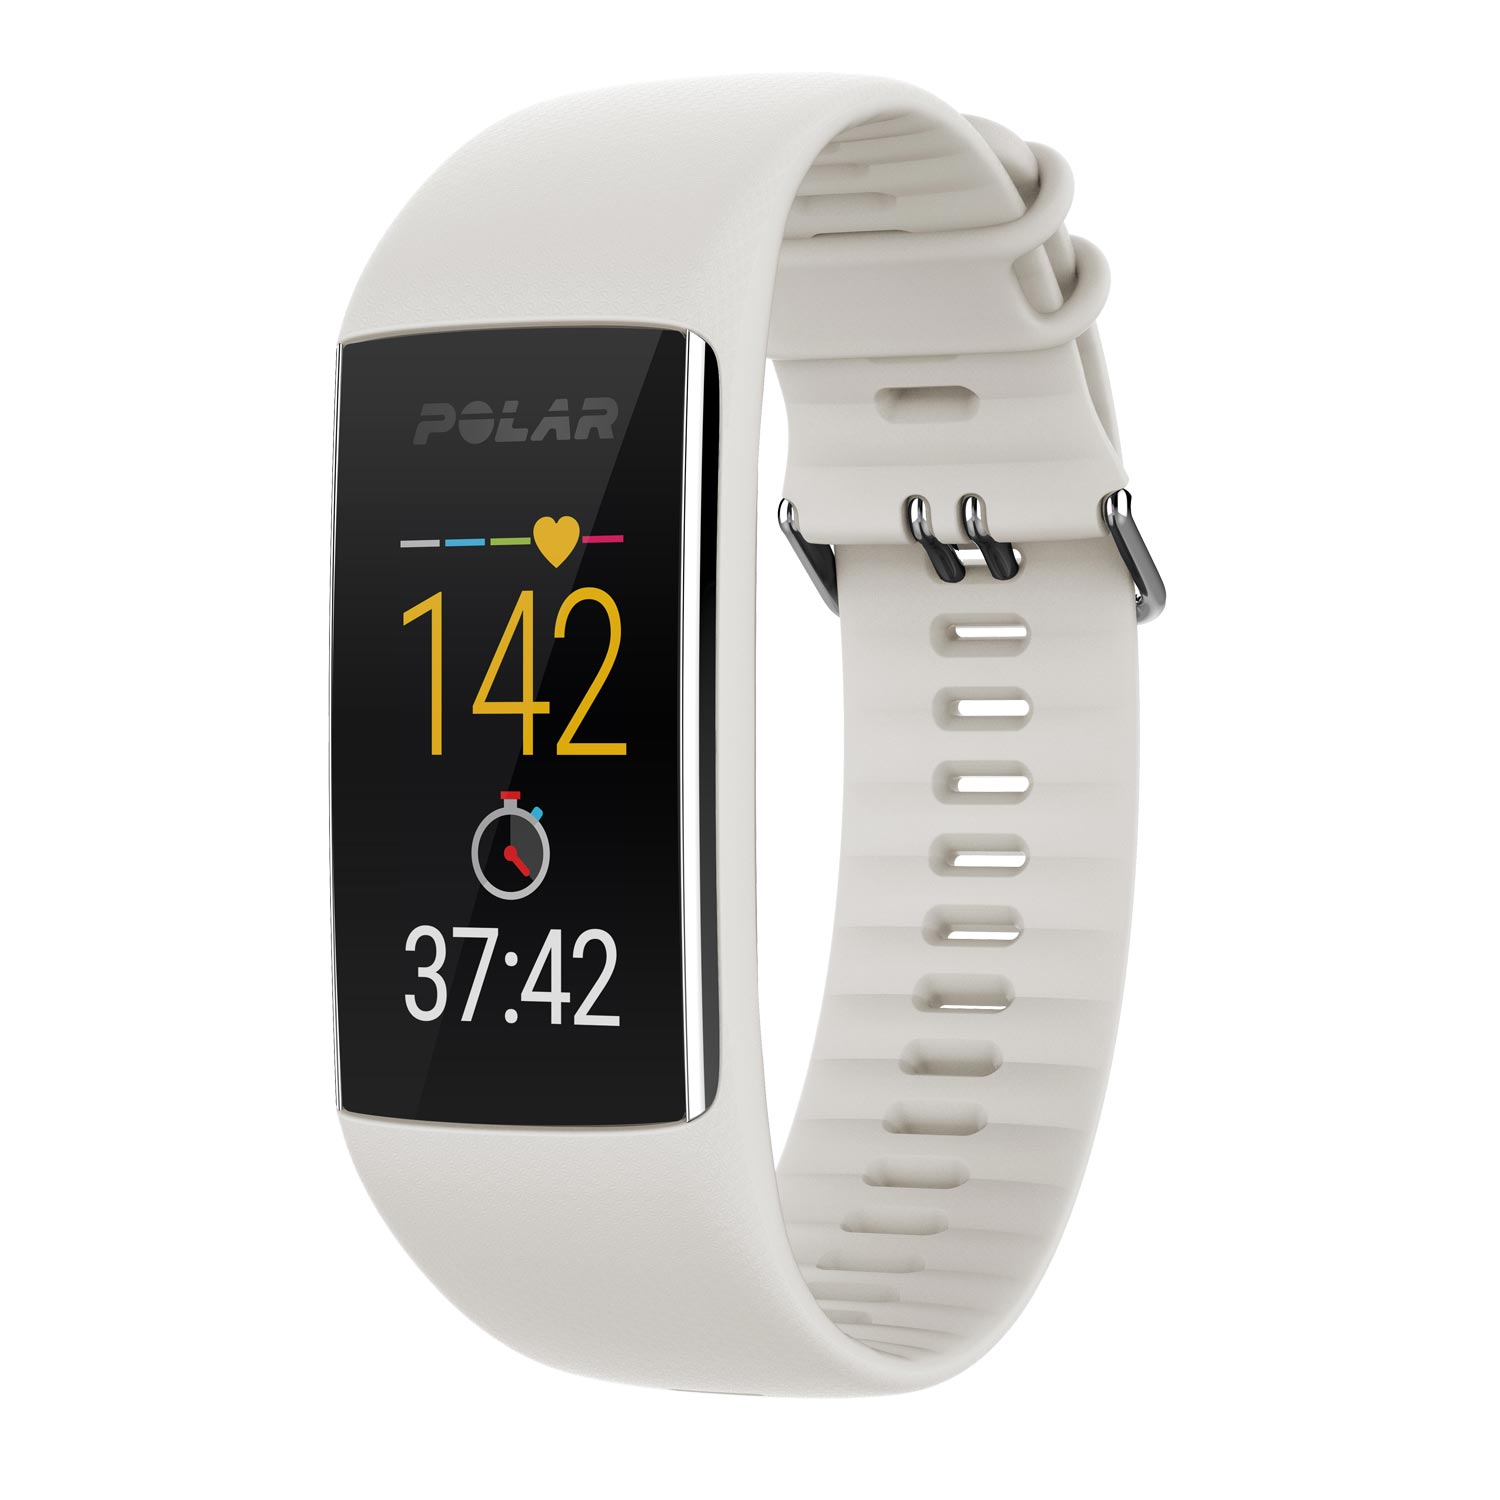 d2bcee72bf4 This sleek and sporty waterproof fitness tracker helps you stay on the  pulse 24/7 with continuous heart rate monitoring, advanced sleep tracking  and Polar's ...